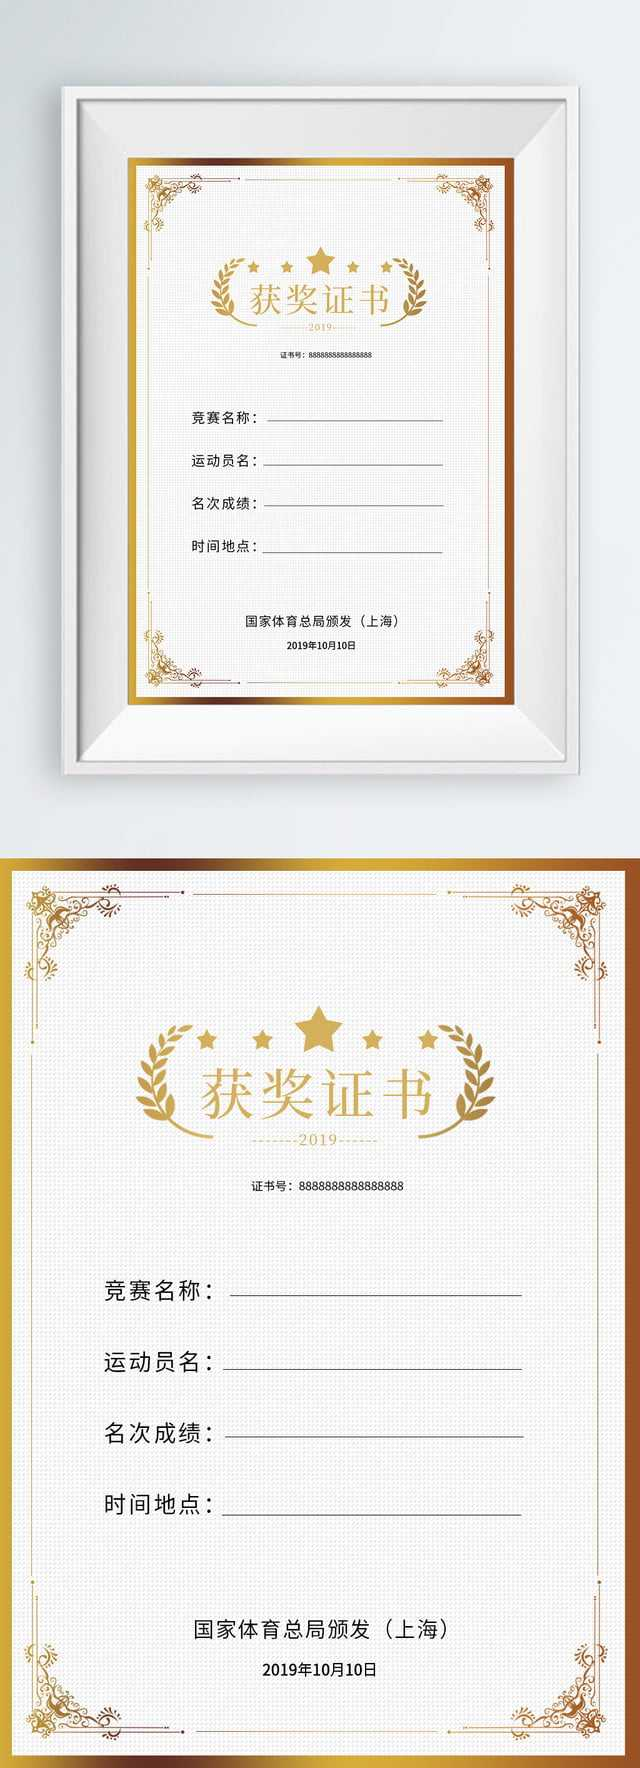 Award Certificate Material Download Award Certificate With Certificate Of License Template